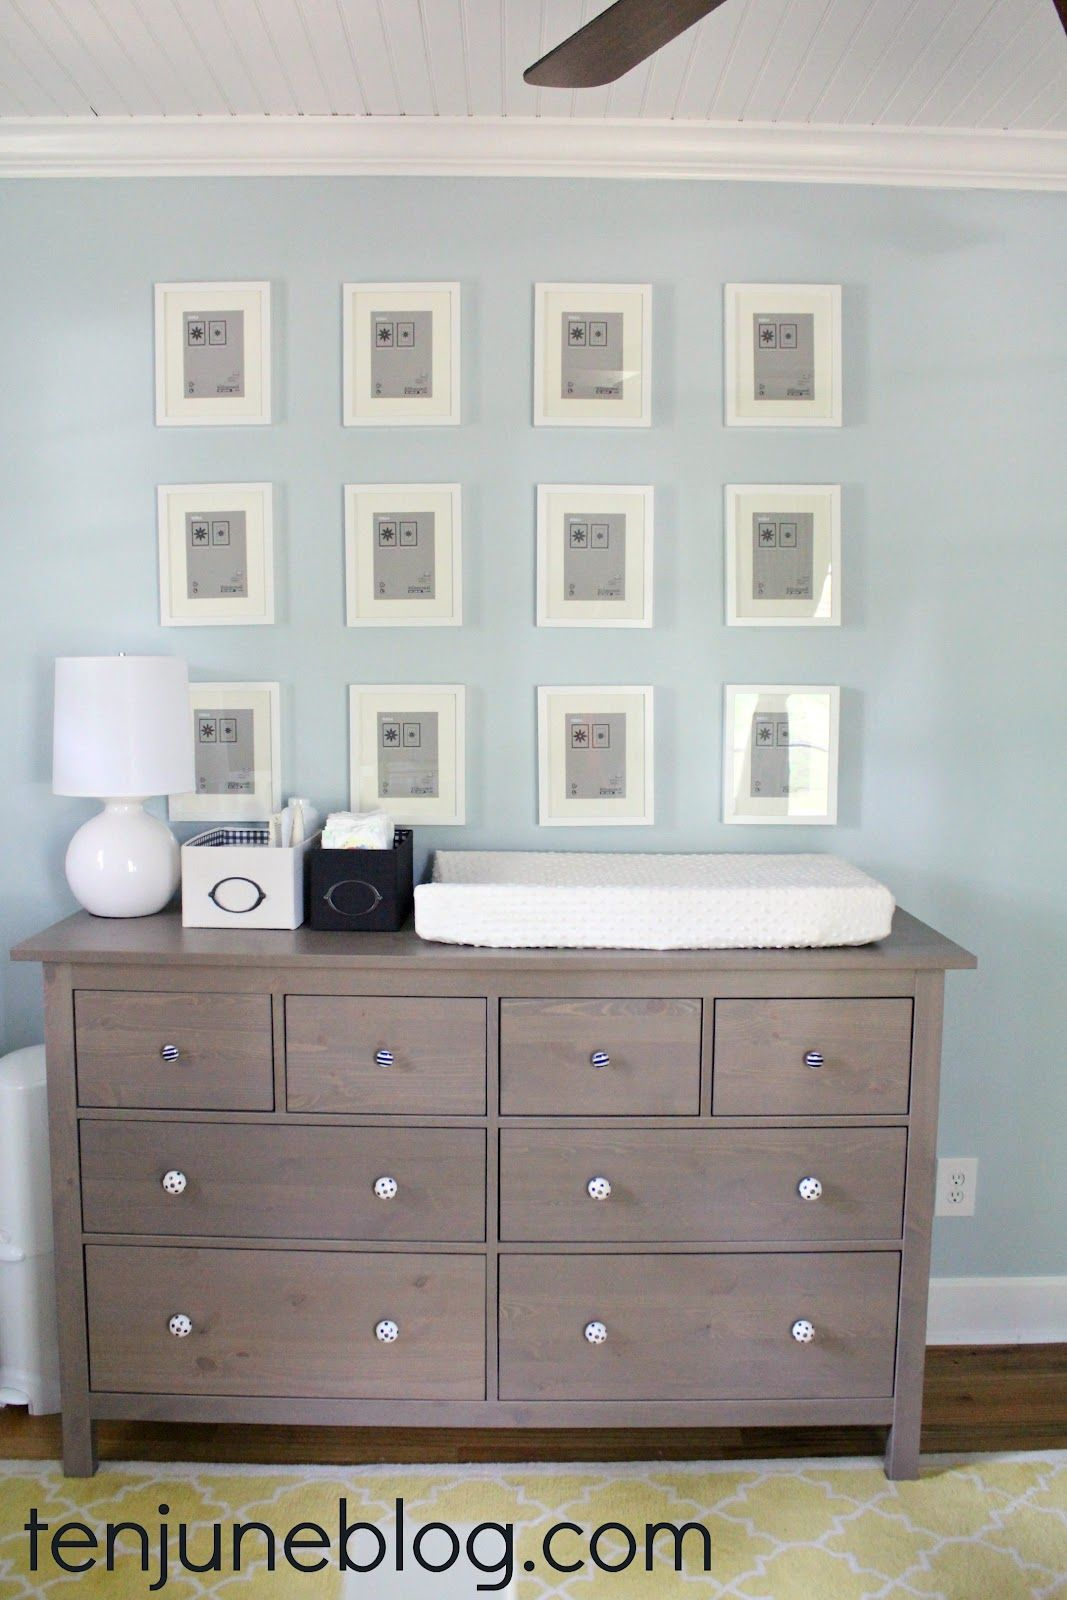 Ikea Hemnes Dresser Low And Deep Enough To Double As A Changing Table With Plenty Of Room For Clothes Supply Storage Love The Frame Wall Idea Too